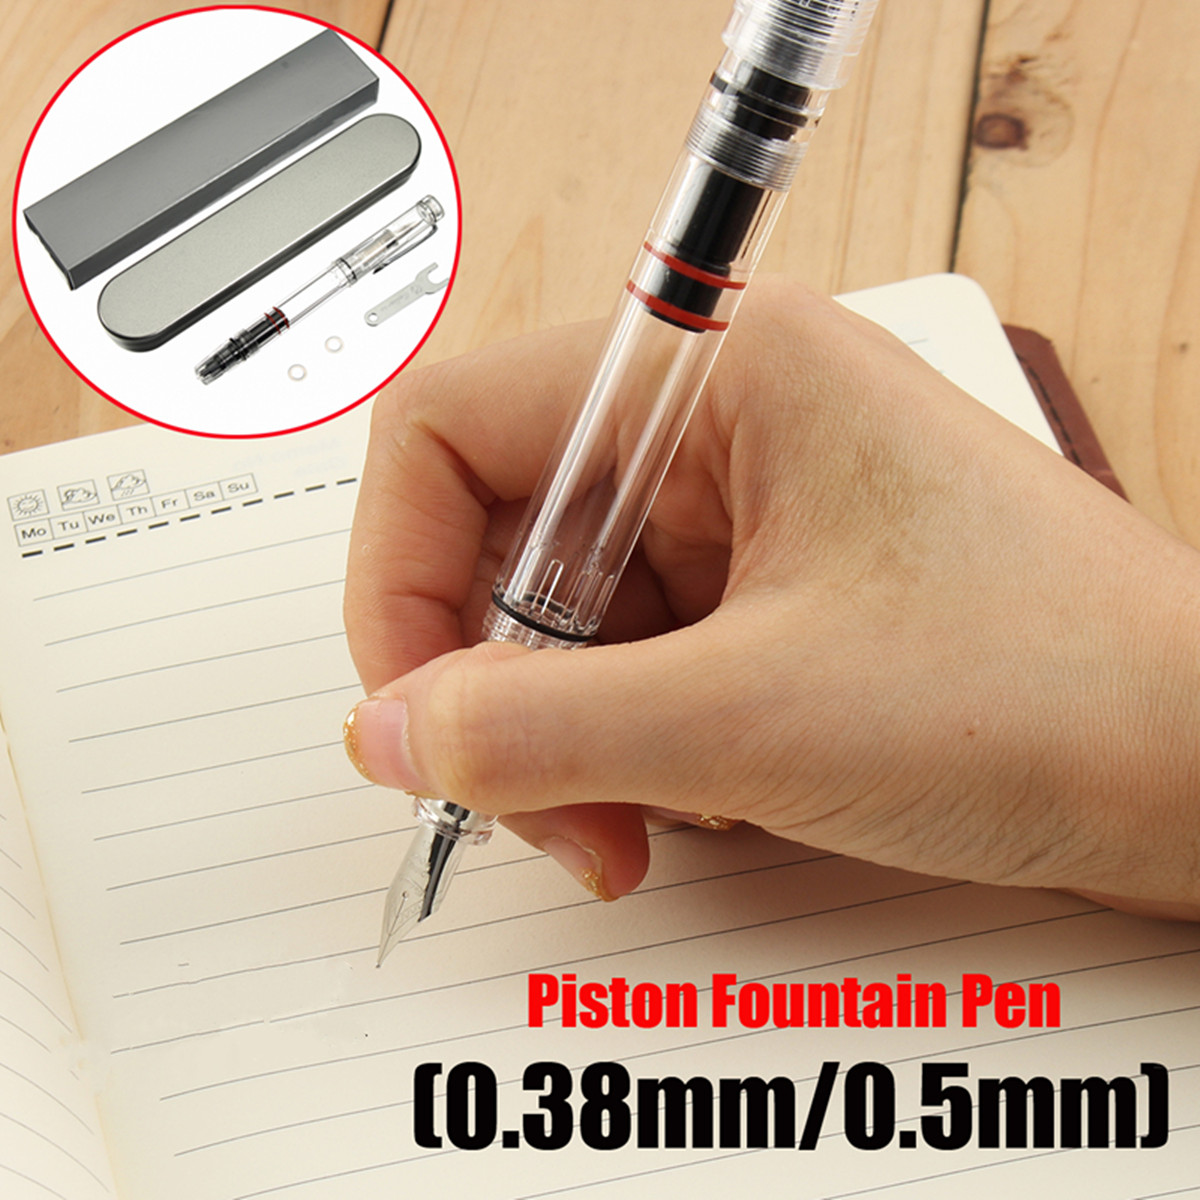 New 1pcs 0.38/0.5mm Fine Nib Transparent Piston Fountain Pen High Quality School Office Stationery Supplies for Students Gift 1pcs excellent quality brand black color fountain pen roller pen case holder fit office school stationery supplies for students